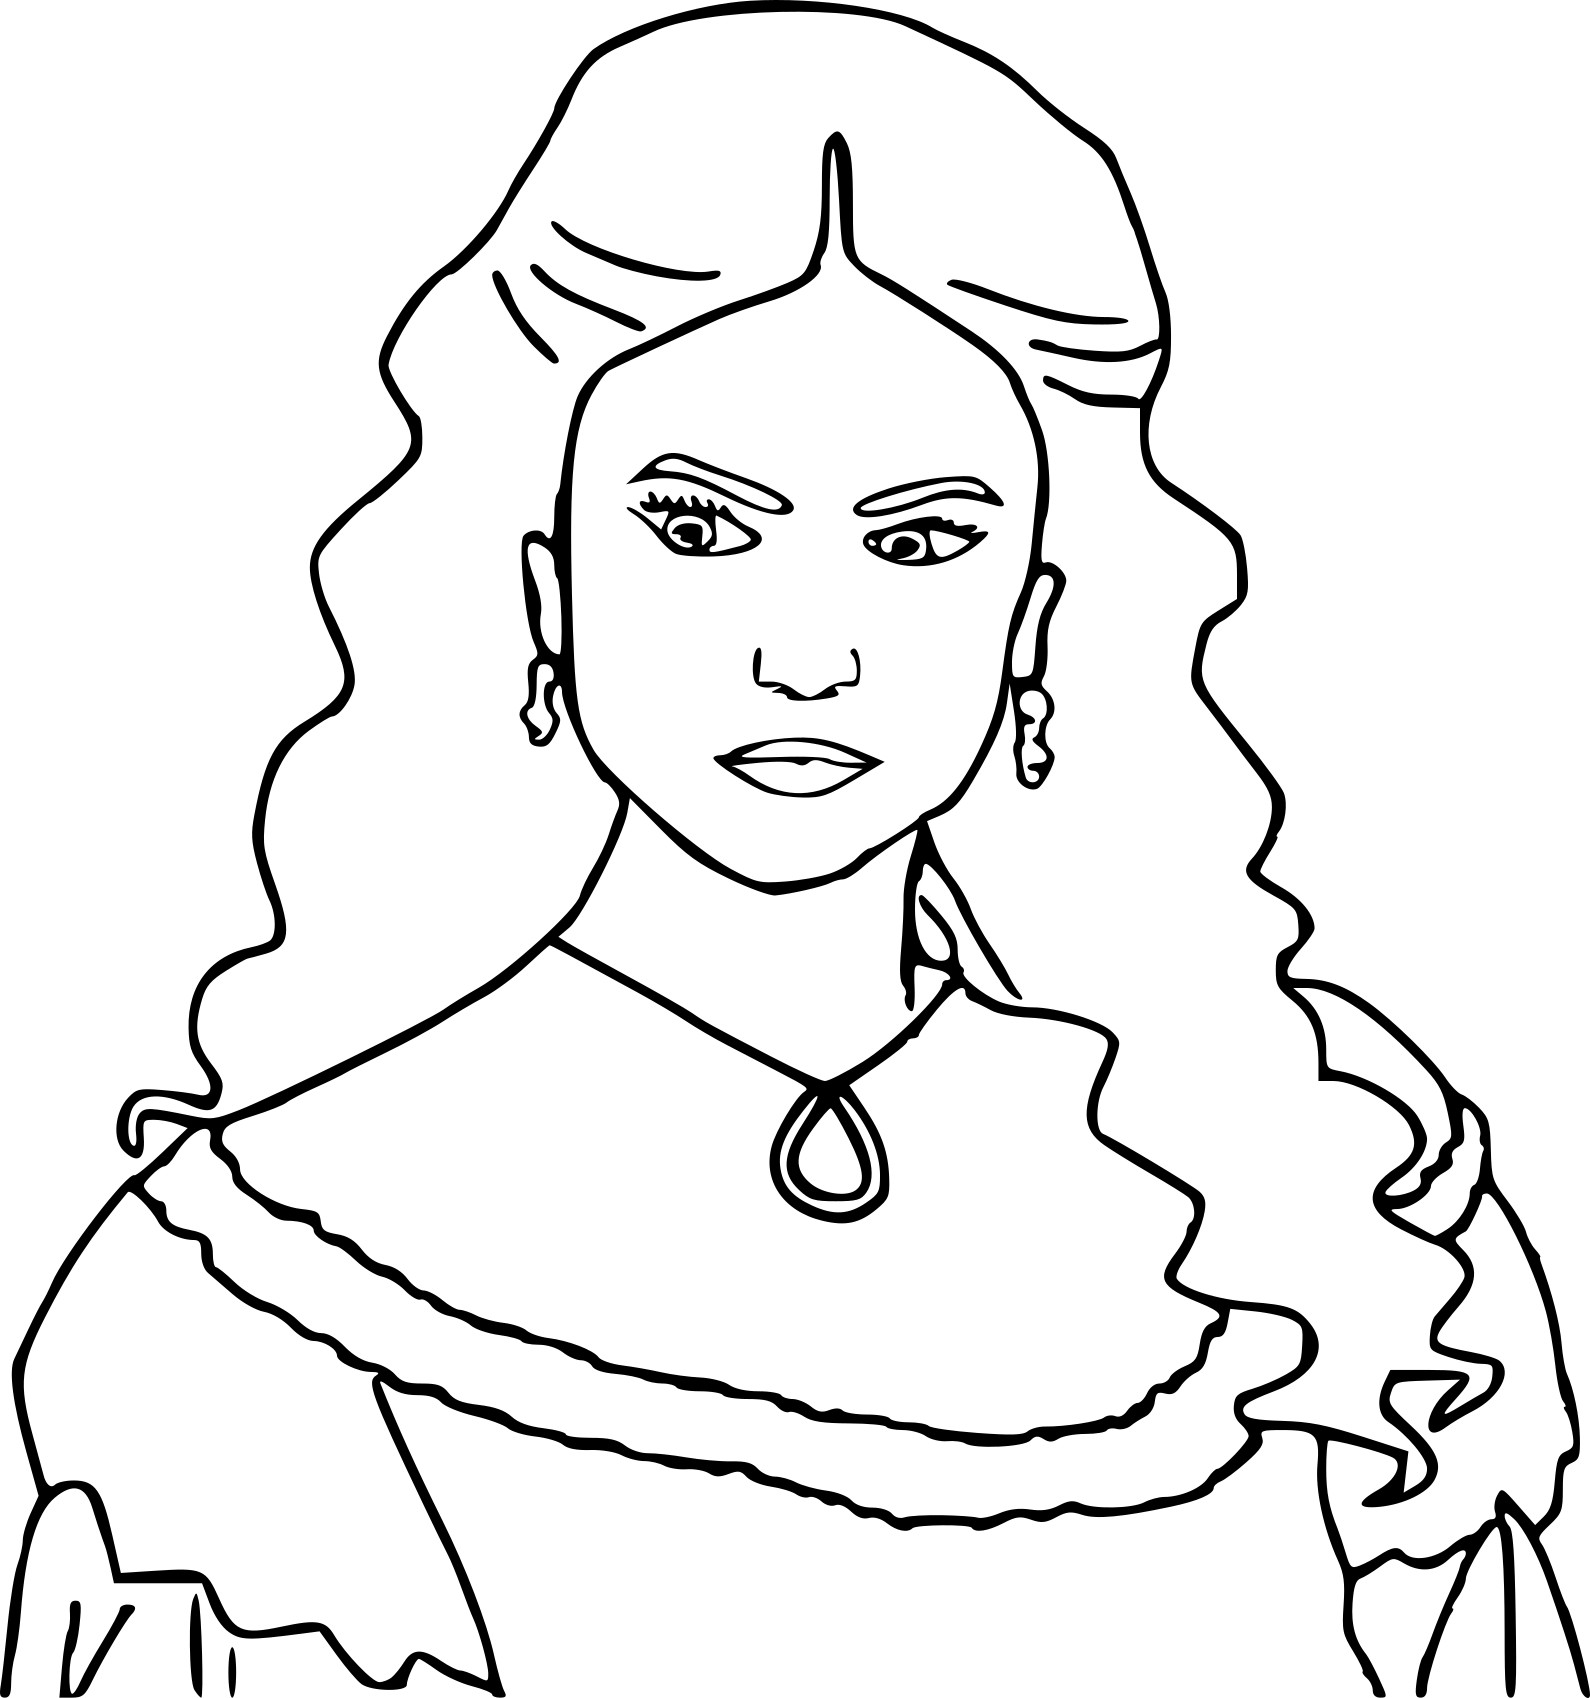 coloring sheet vampire diaries coloring pages vampire diaries coloring pages coloring pages vampire diaries sheet coloring vampire coloring pages